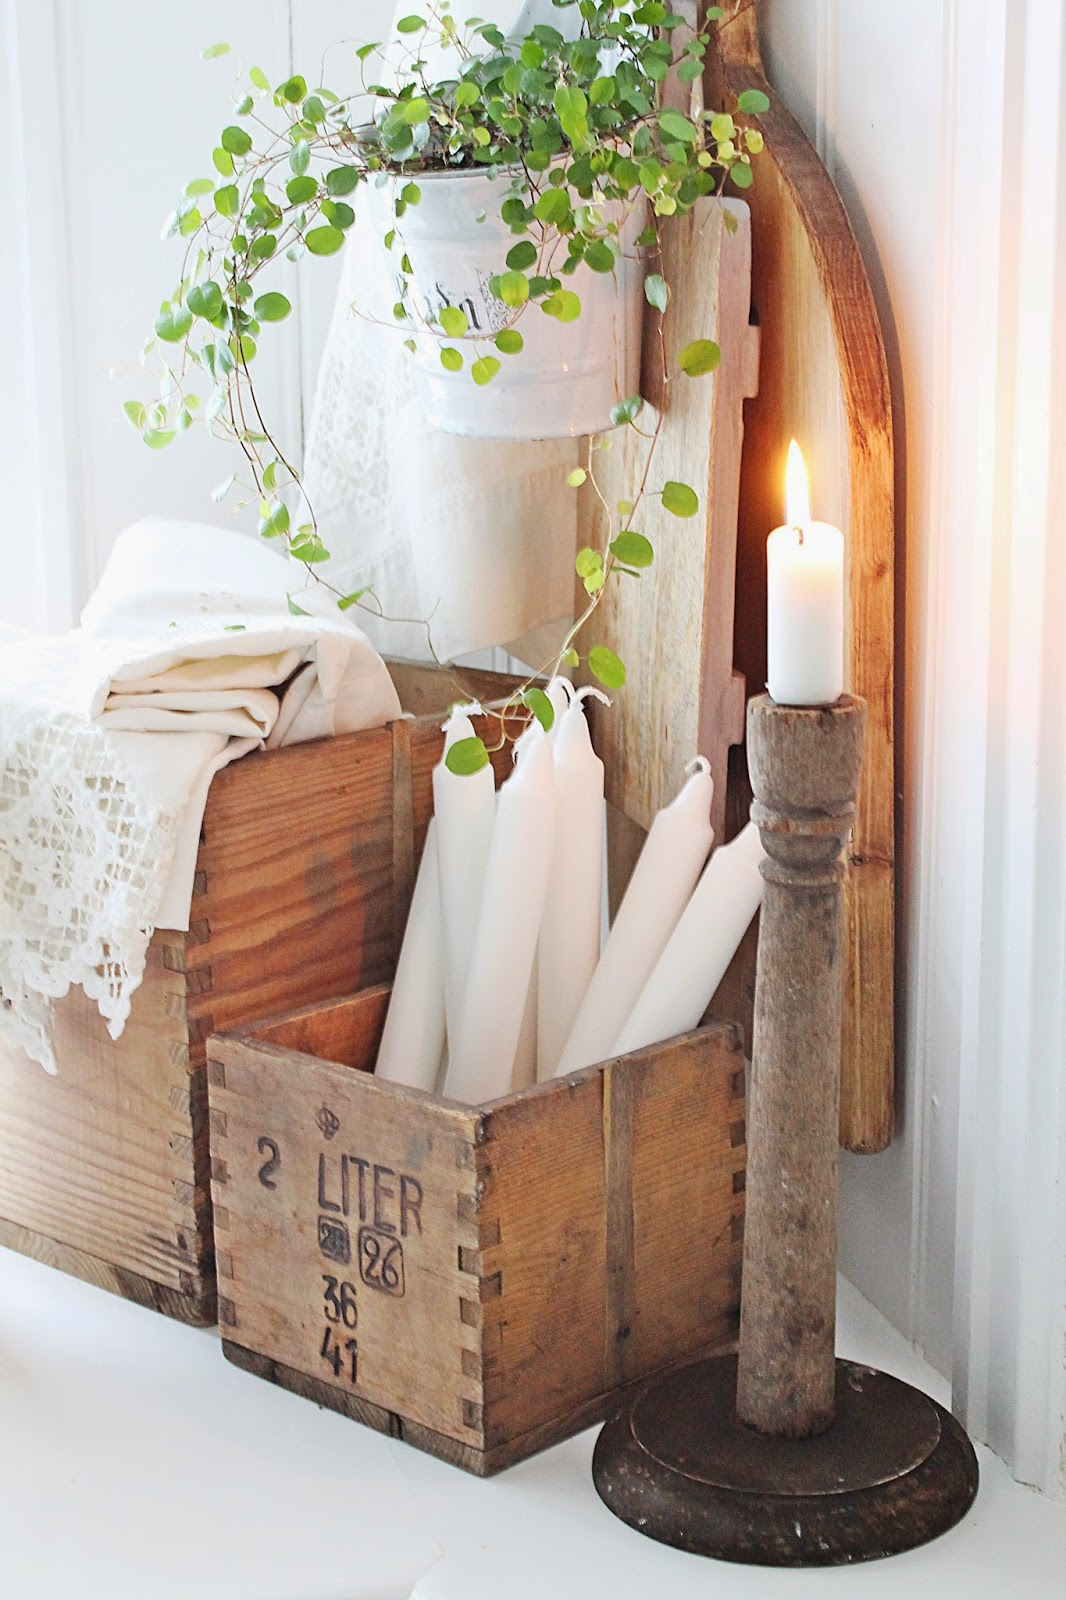 13 Creative DIY Crate Crafts To Take On - Useful DIY Projects